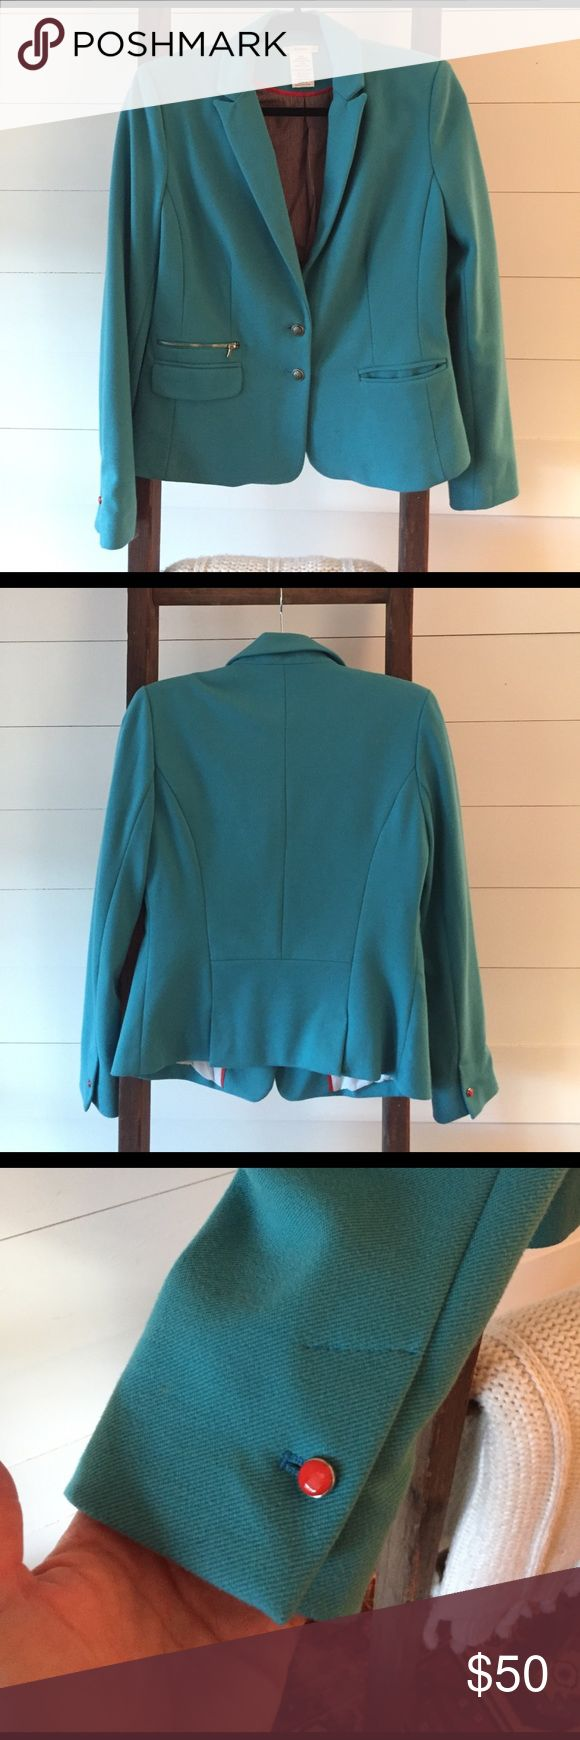 Turquoise blazer Great looking turquoise blazer with cute coral button details. Only worn a handful of times-in great condition! Esley Jackets & Coats Blazers